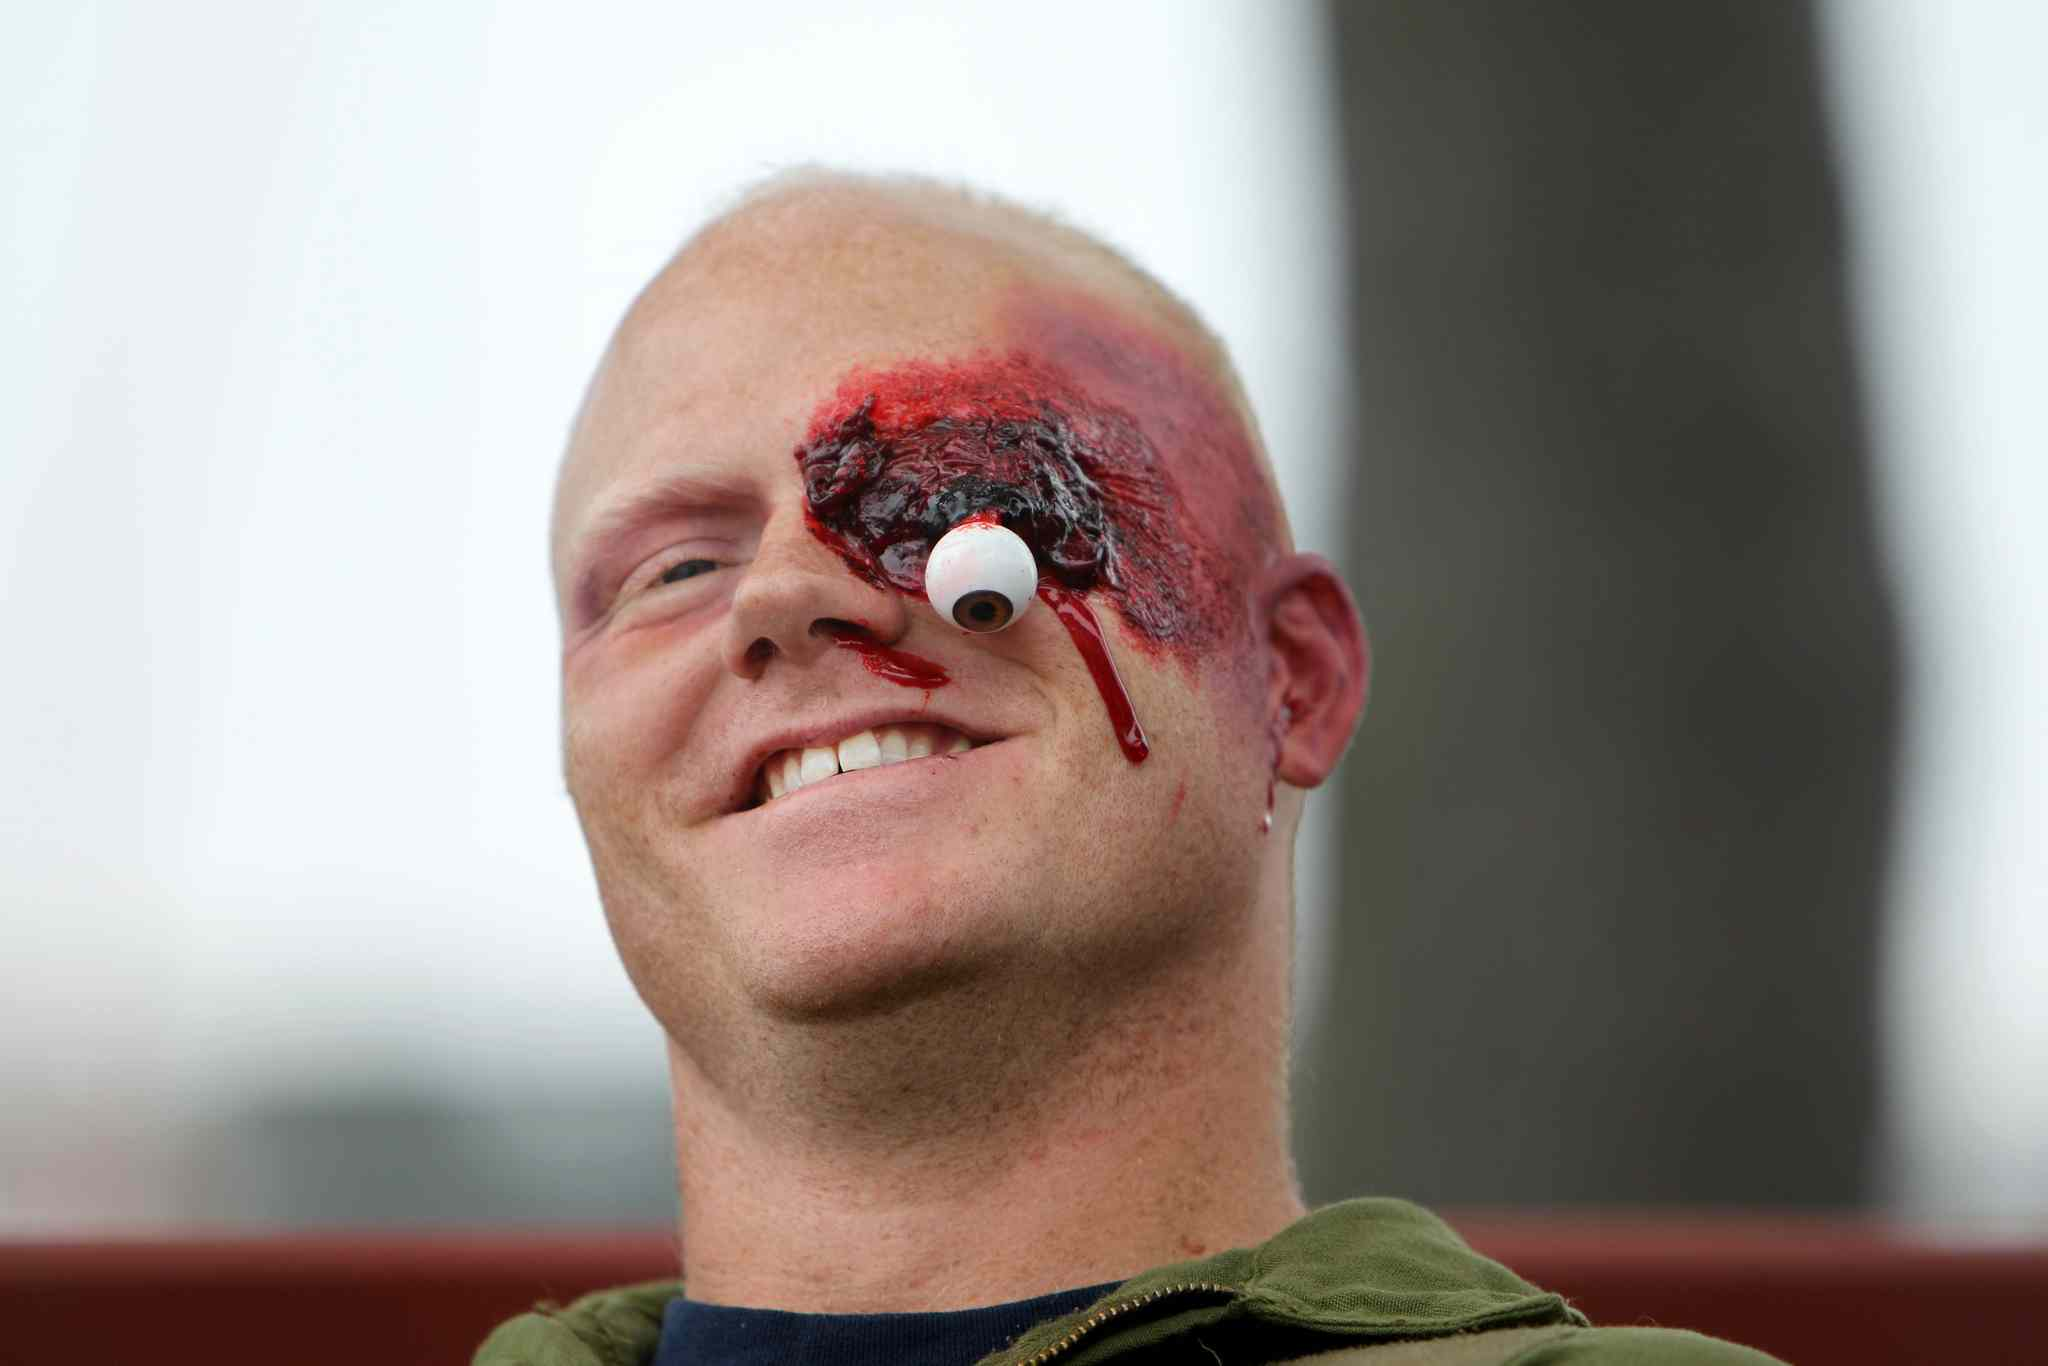 Captain James Grey of Cold Lake, Alta., grins despite his seemingly grim situation. Makeup and prosthetics were applied to give his 'injury' a life-like feel.